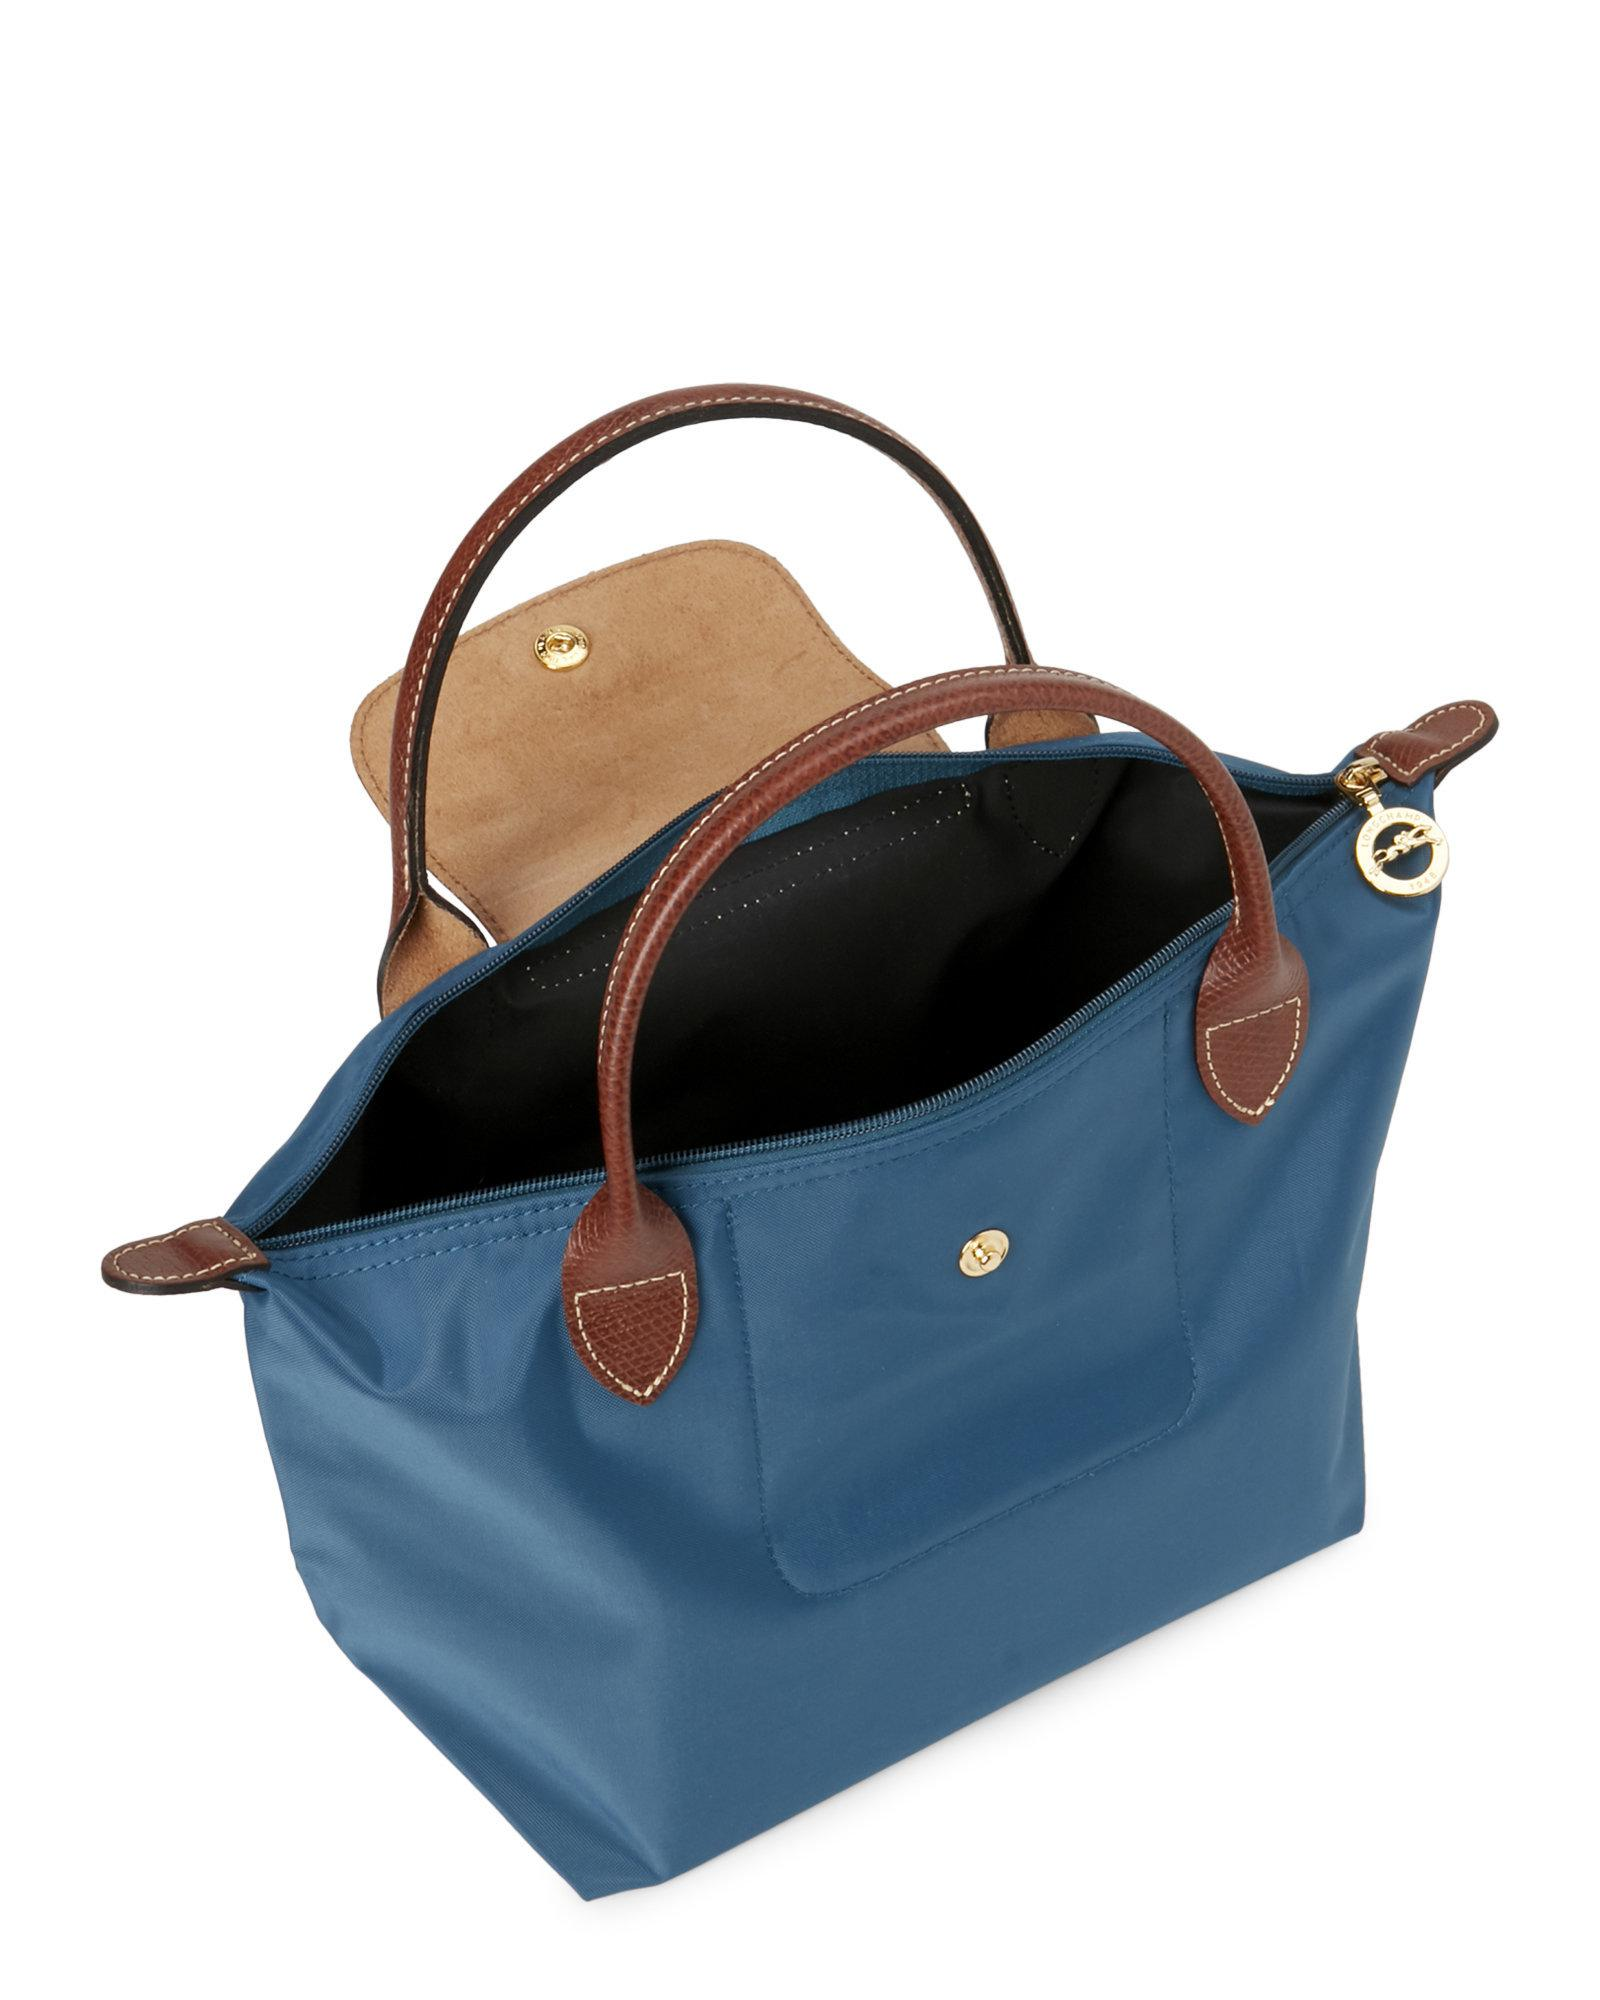 e6ed0ab8af6f88 Longchamp Peacock Le Pliage Small Satchel in Blue - Lyst